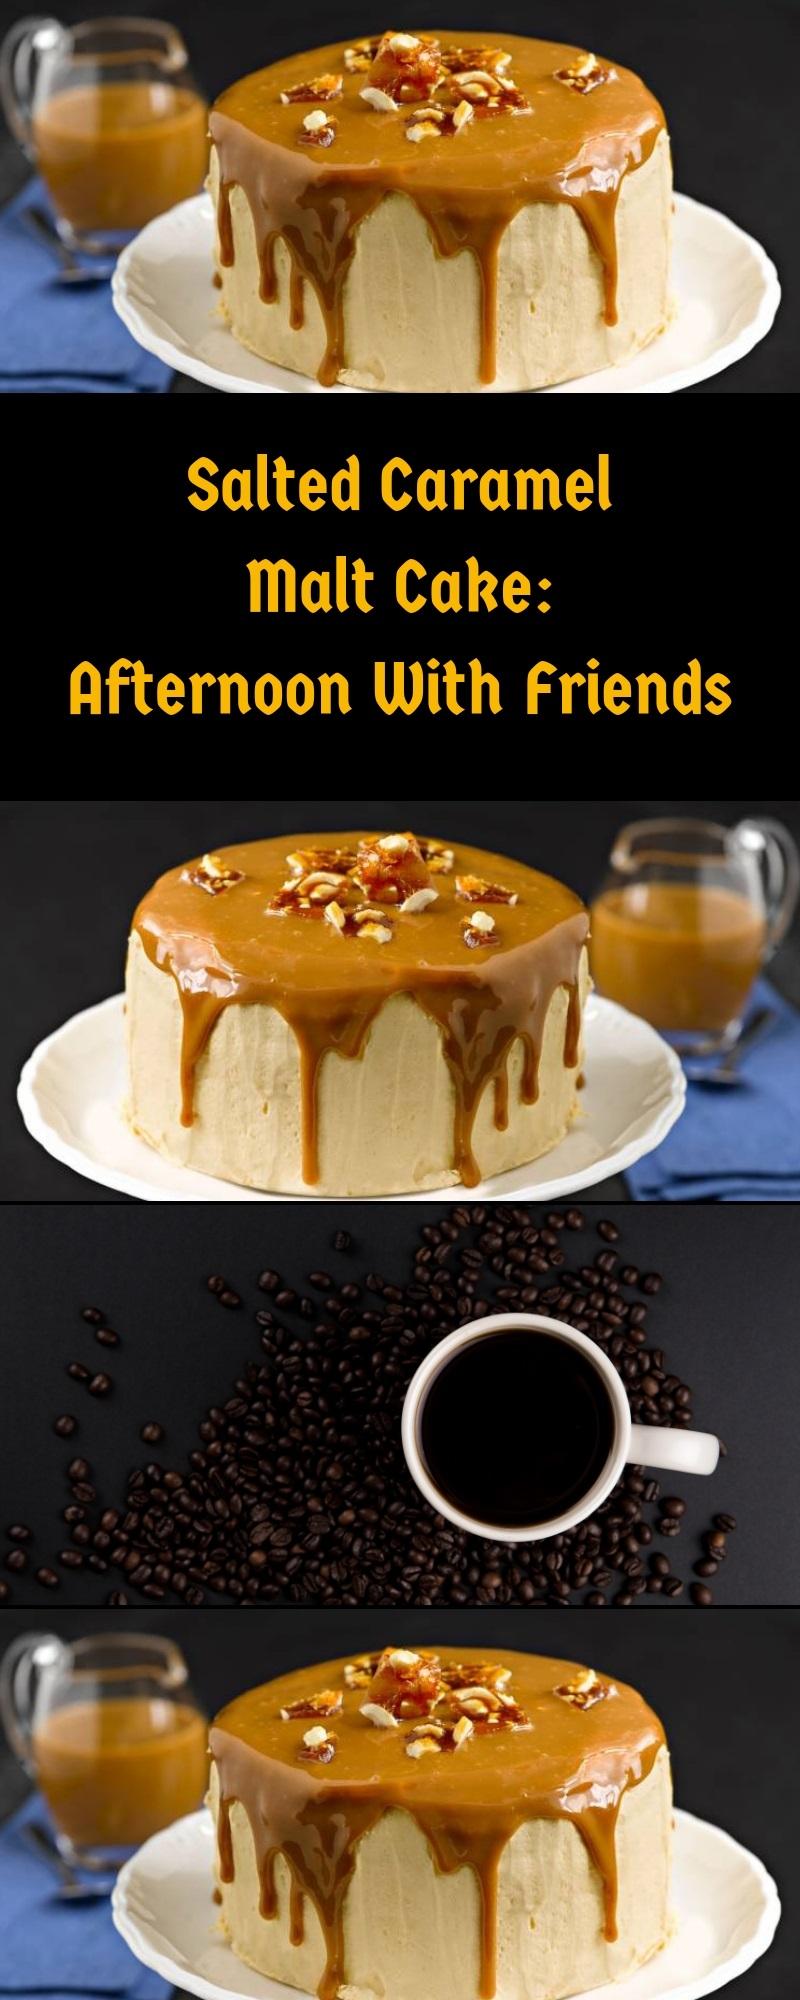 Salted Caramel Malt Cake: Afternoon With Friends